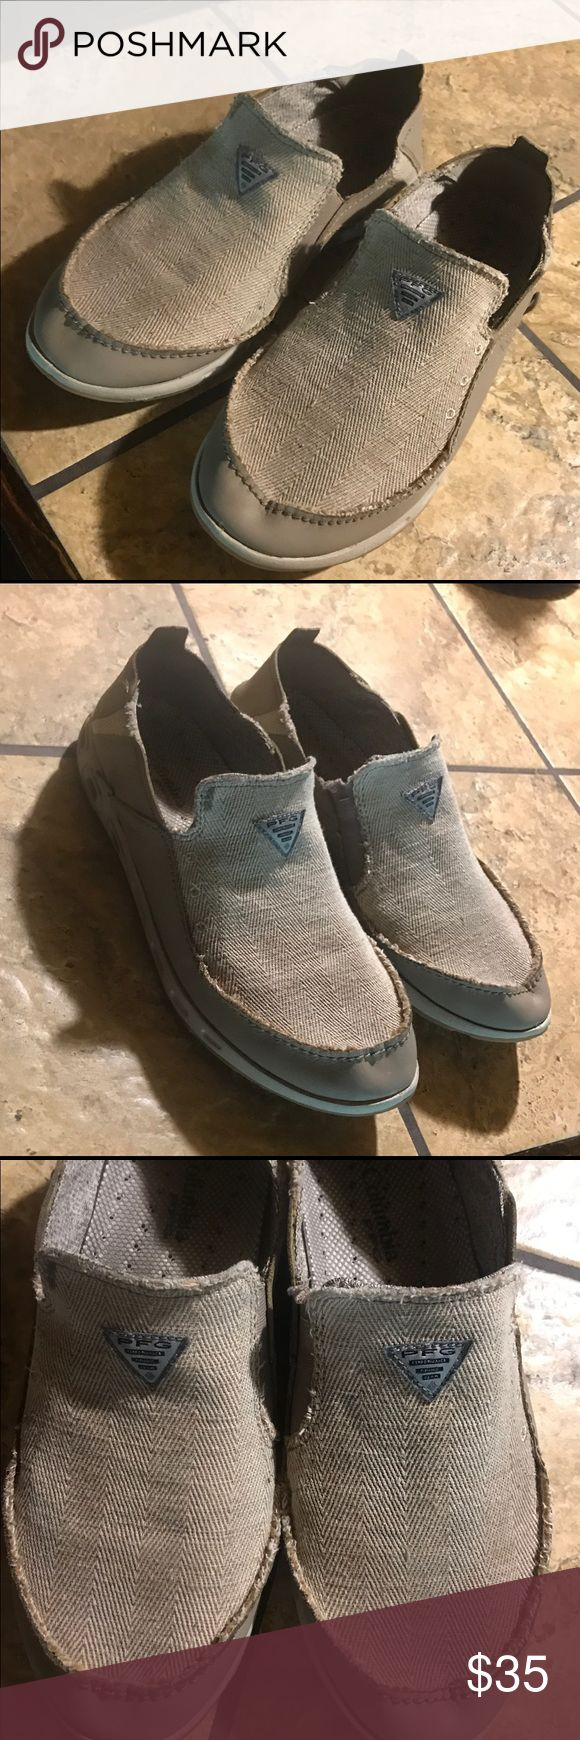 Columbia Sportswear Bahama Vent PFG Slip-ons Columbia sportswear Bahama vent PFG slip on shoes. Worn a handful of times. Khaki color. Worn a handful of times. Size 11.5 Columbia Shoes Loafers & Slip-Ons